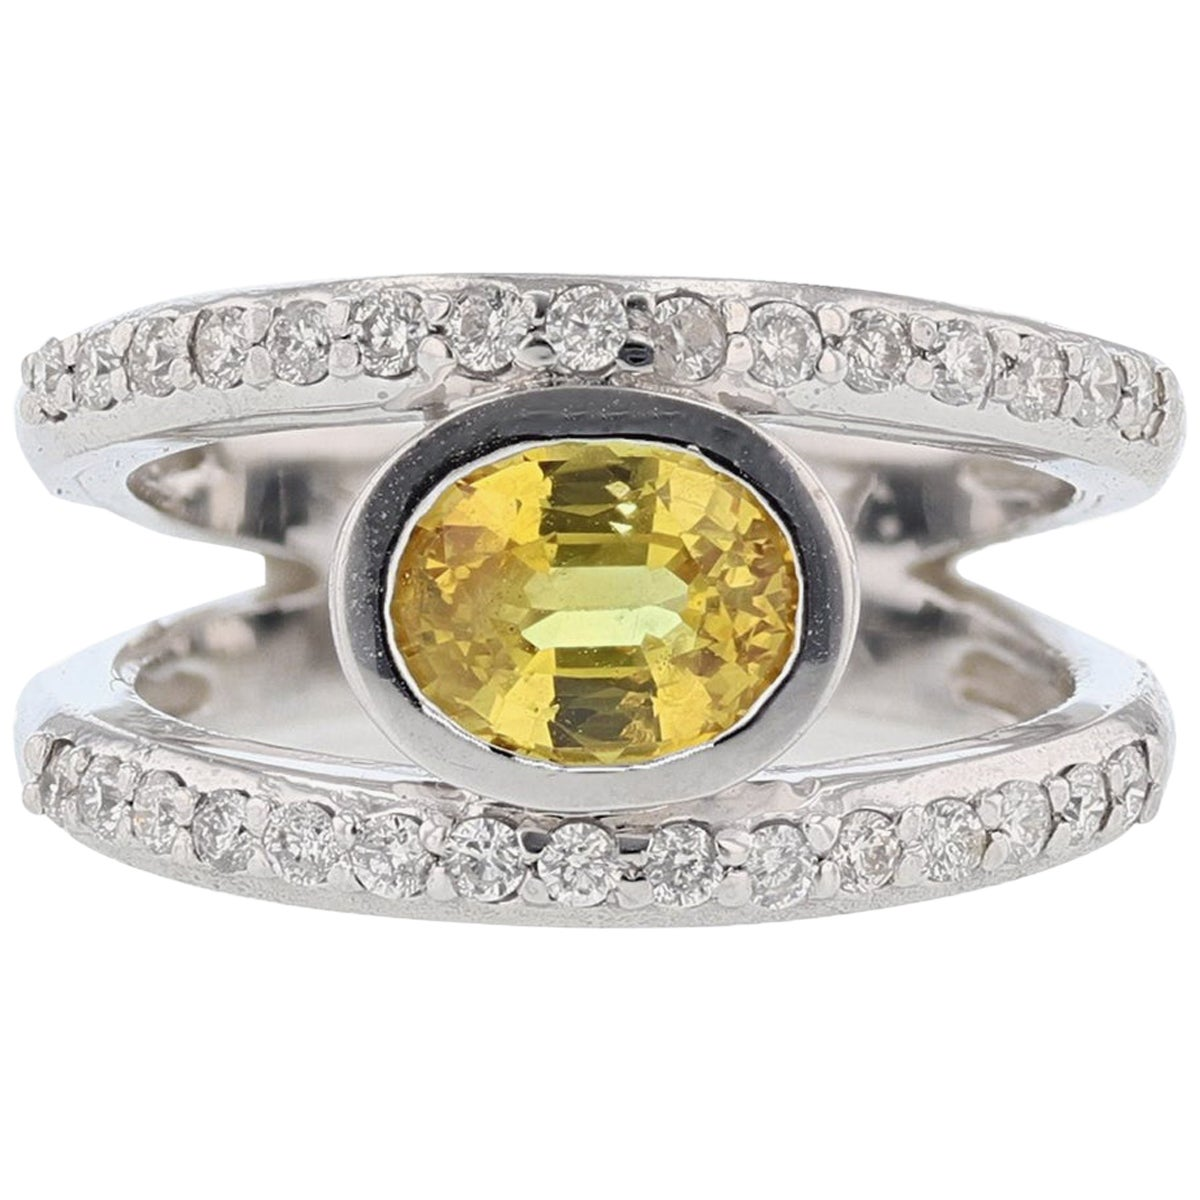 14 Karat White Gold 1.79 Carat Oval Yellow Sapphire Diamond Ring